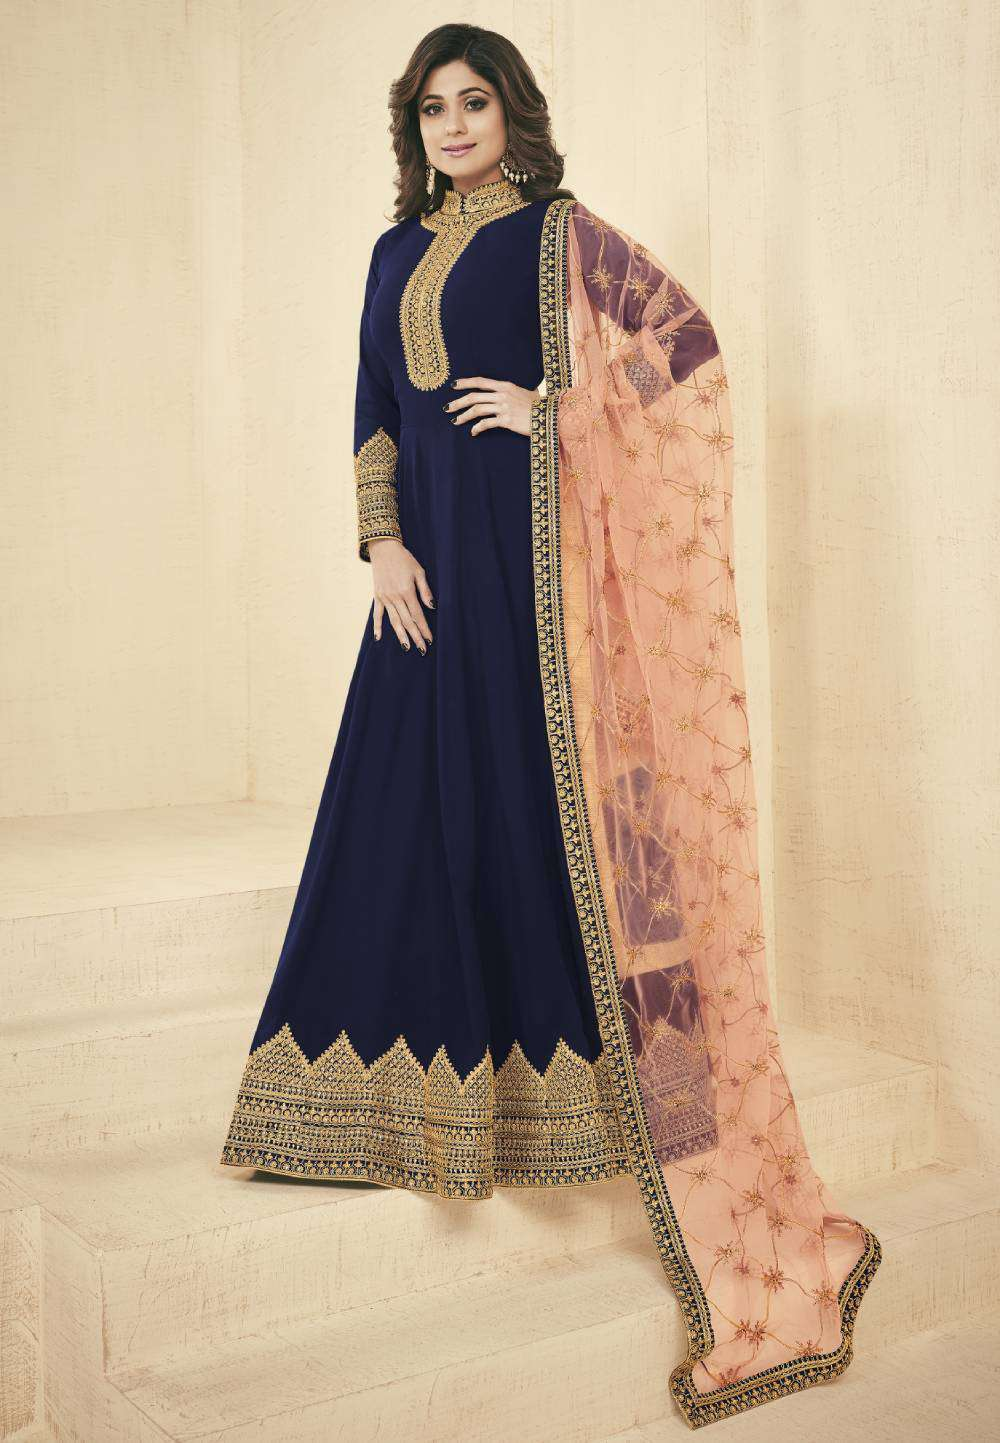 Navy-Blue Real Georgette Gown Design With Embroidered Salwar Kameez MYSK-1889